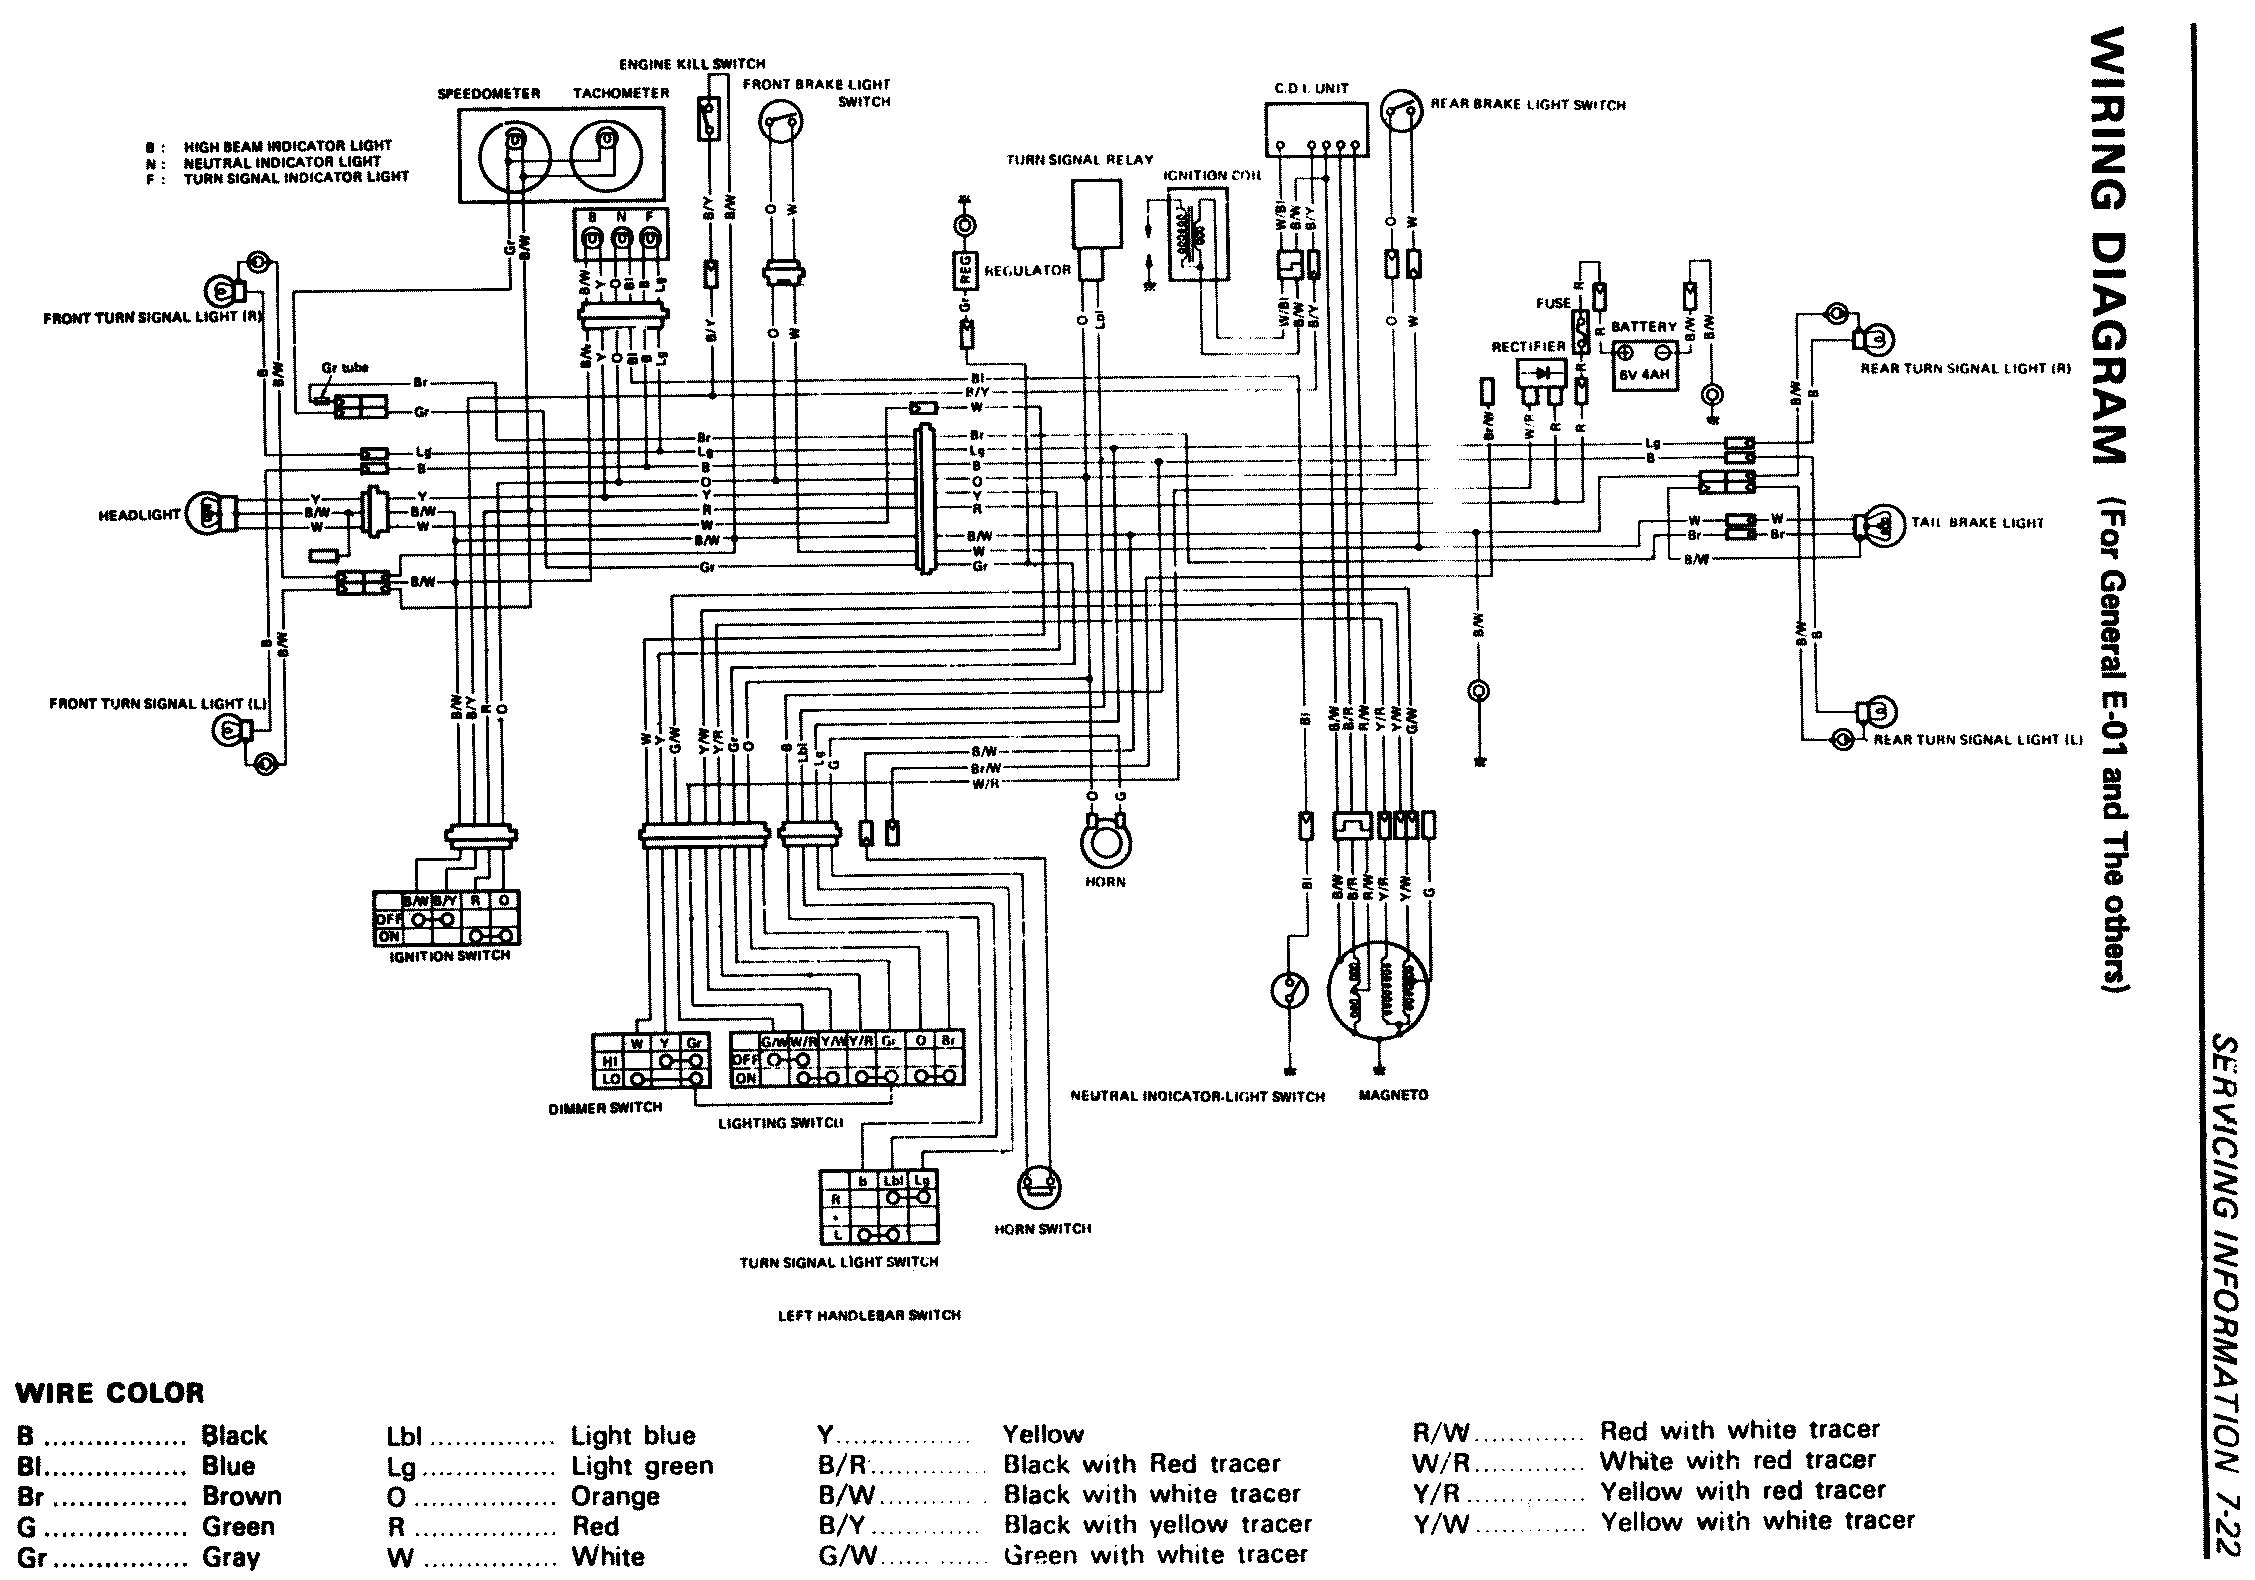 1980 suzuki fz50 wiring diagram trusted wiring diagram u2022 rh soulmatestyle co CB 750 Wiring Diagram Printable CB 750 Wiring Diagram Printable